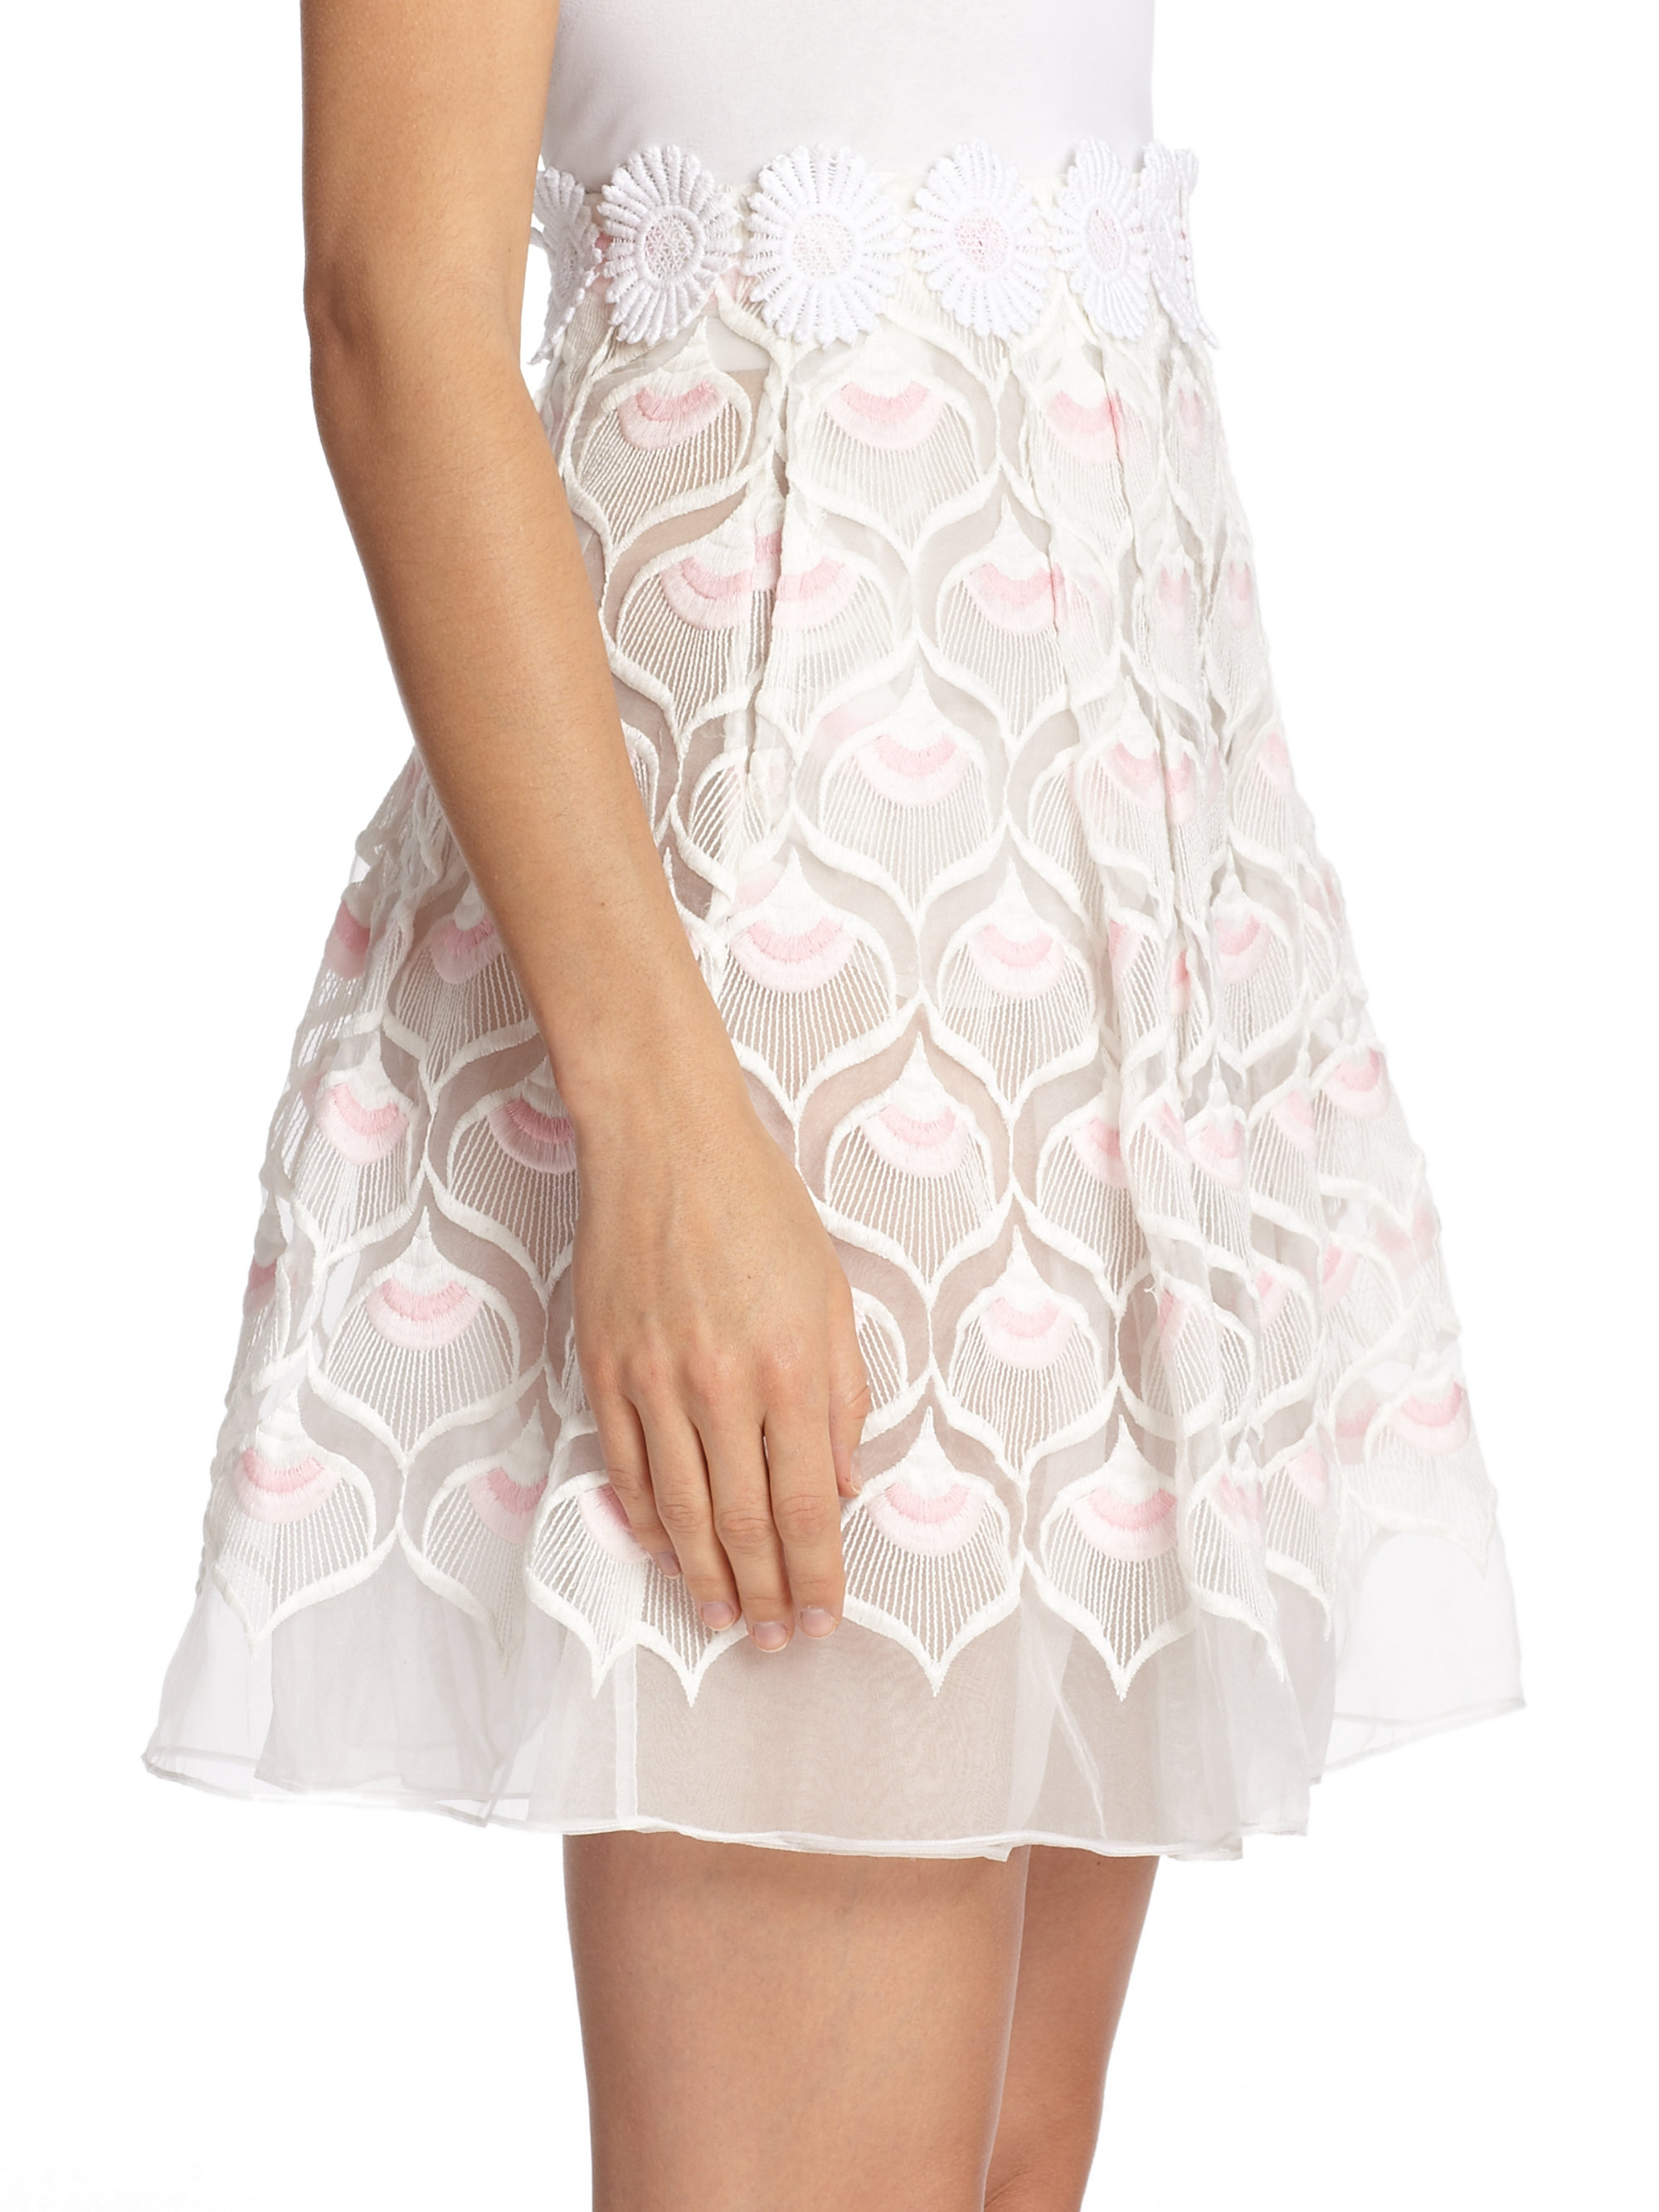 Lyst - Giamba Lace Applique Skirt in Pink